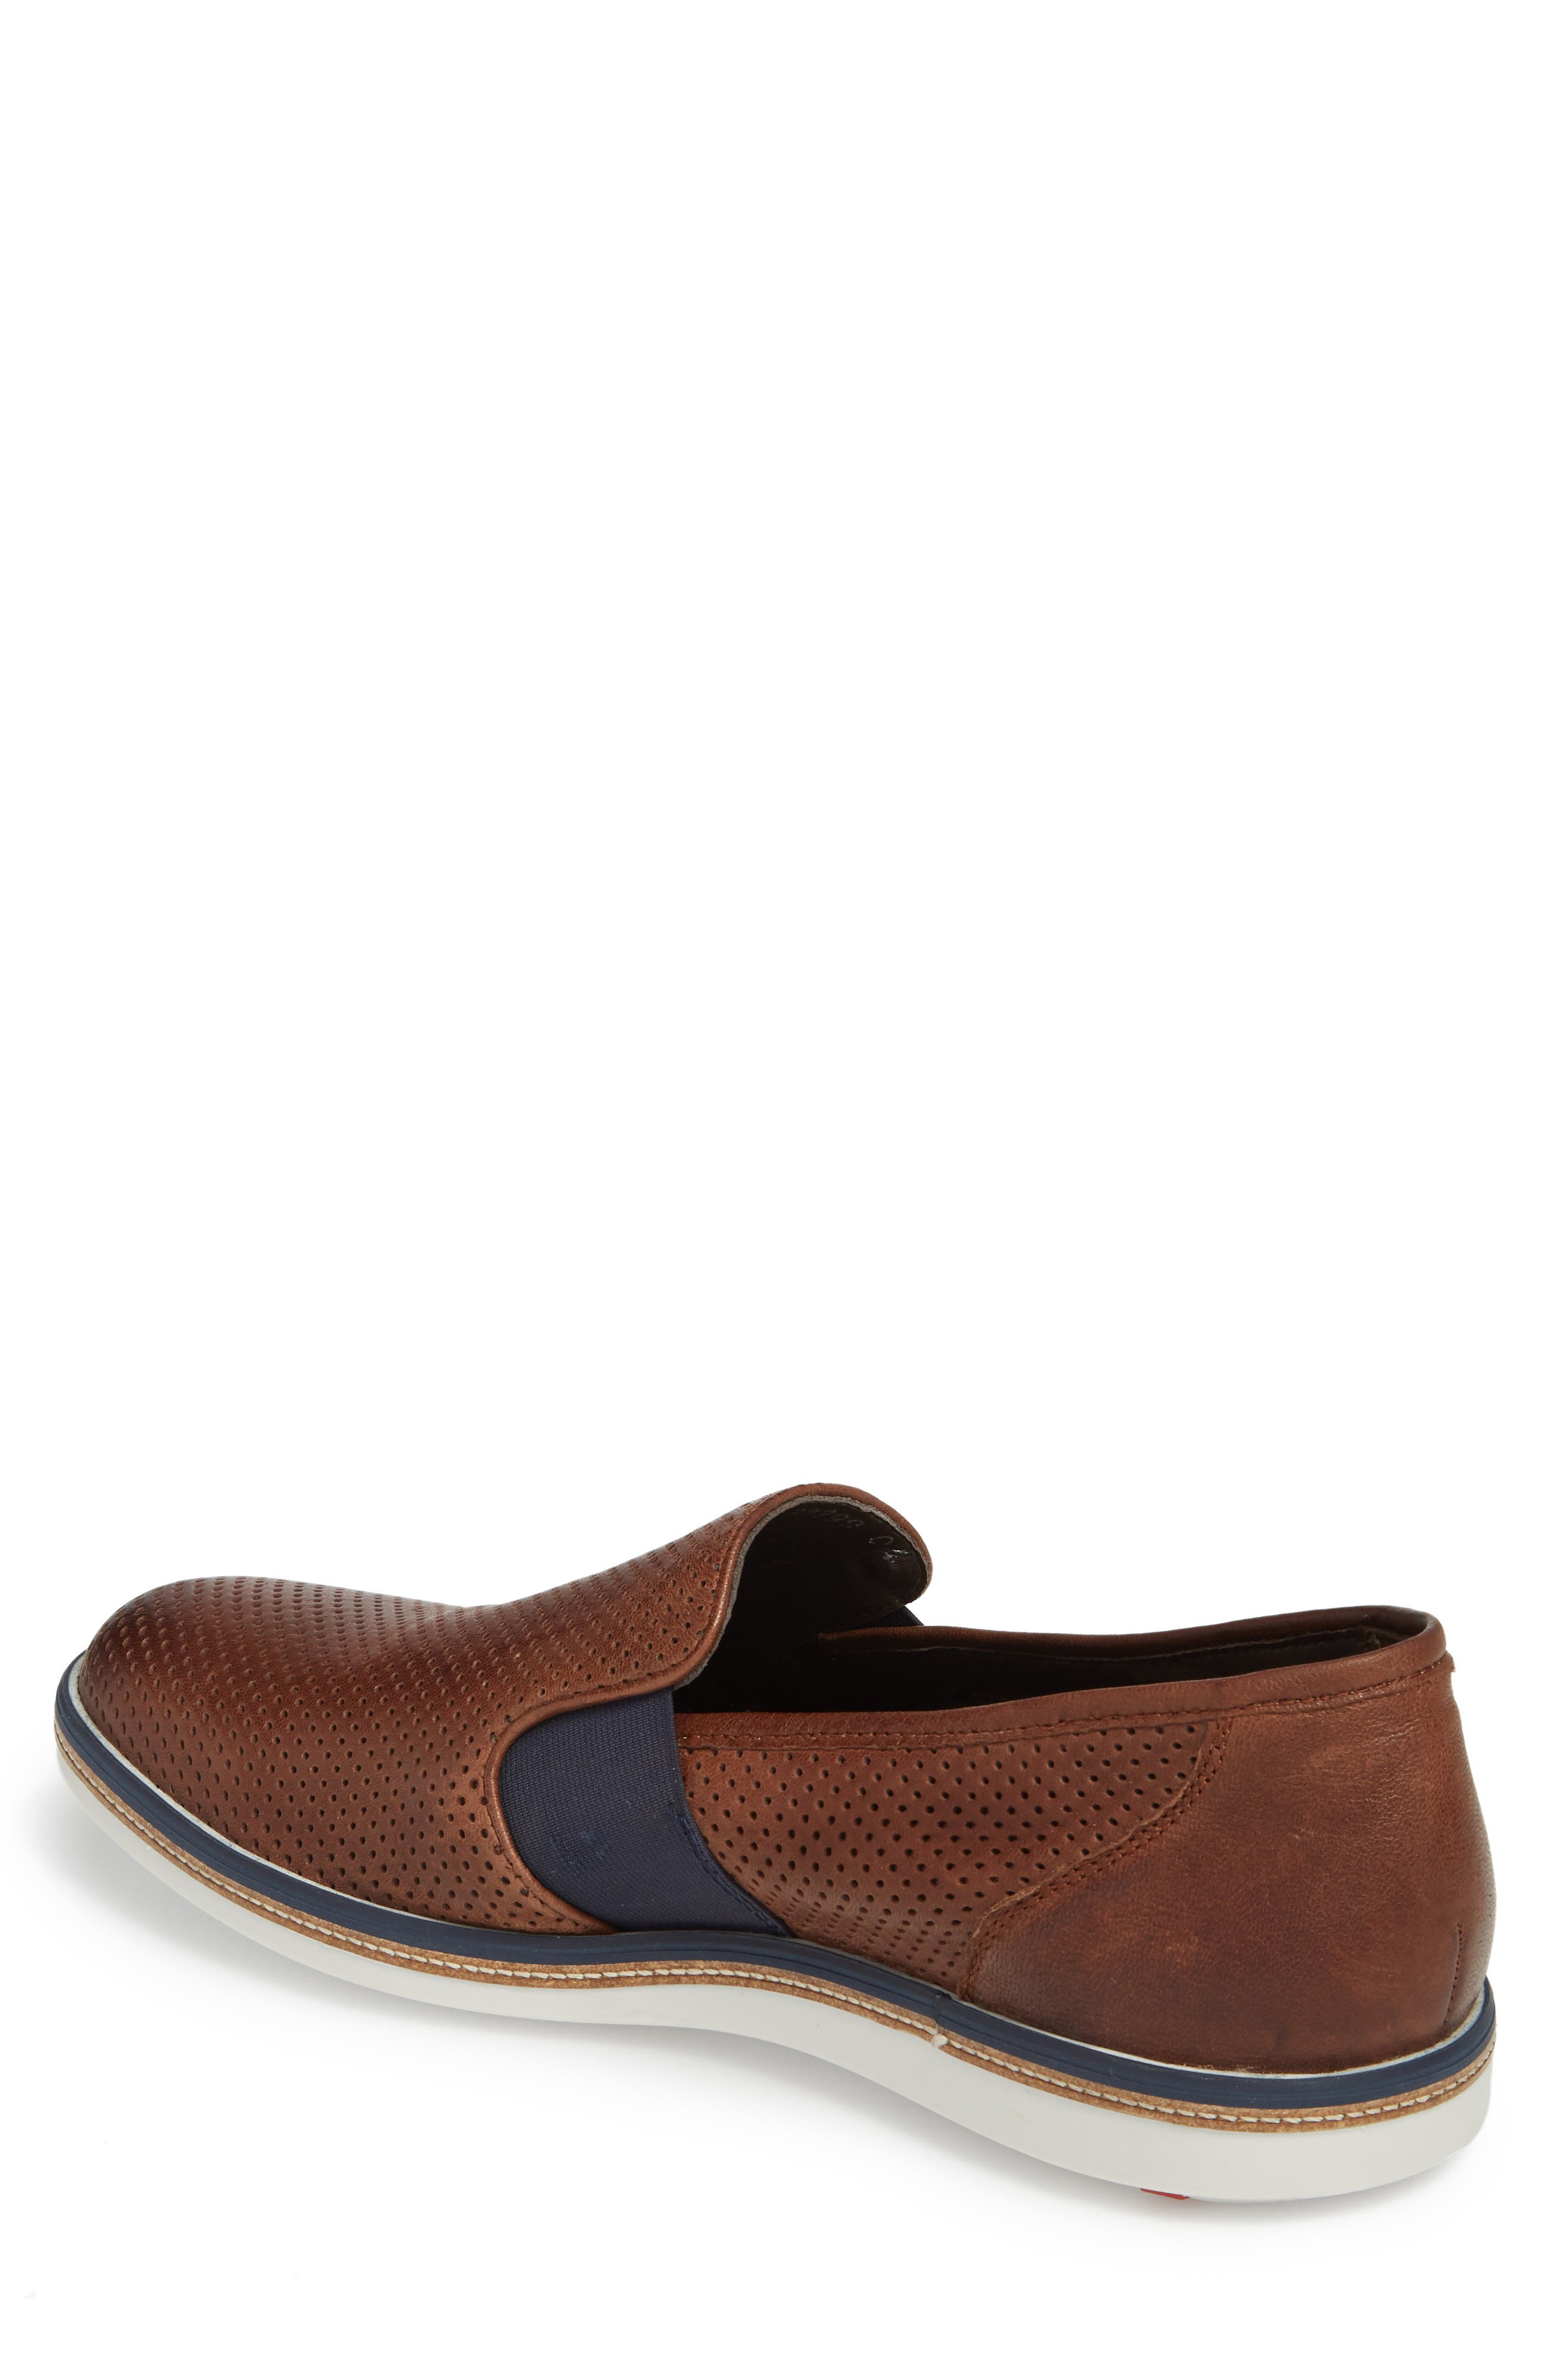 Alister Perforated Loafer,                             Alternate thumbnail 2, color,                             Tobacco Leather